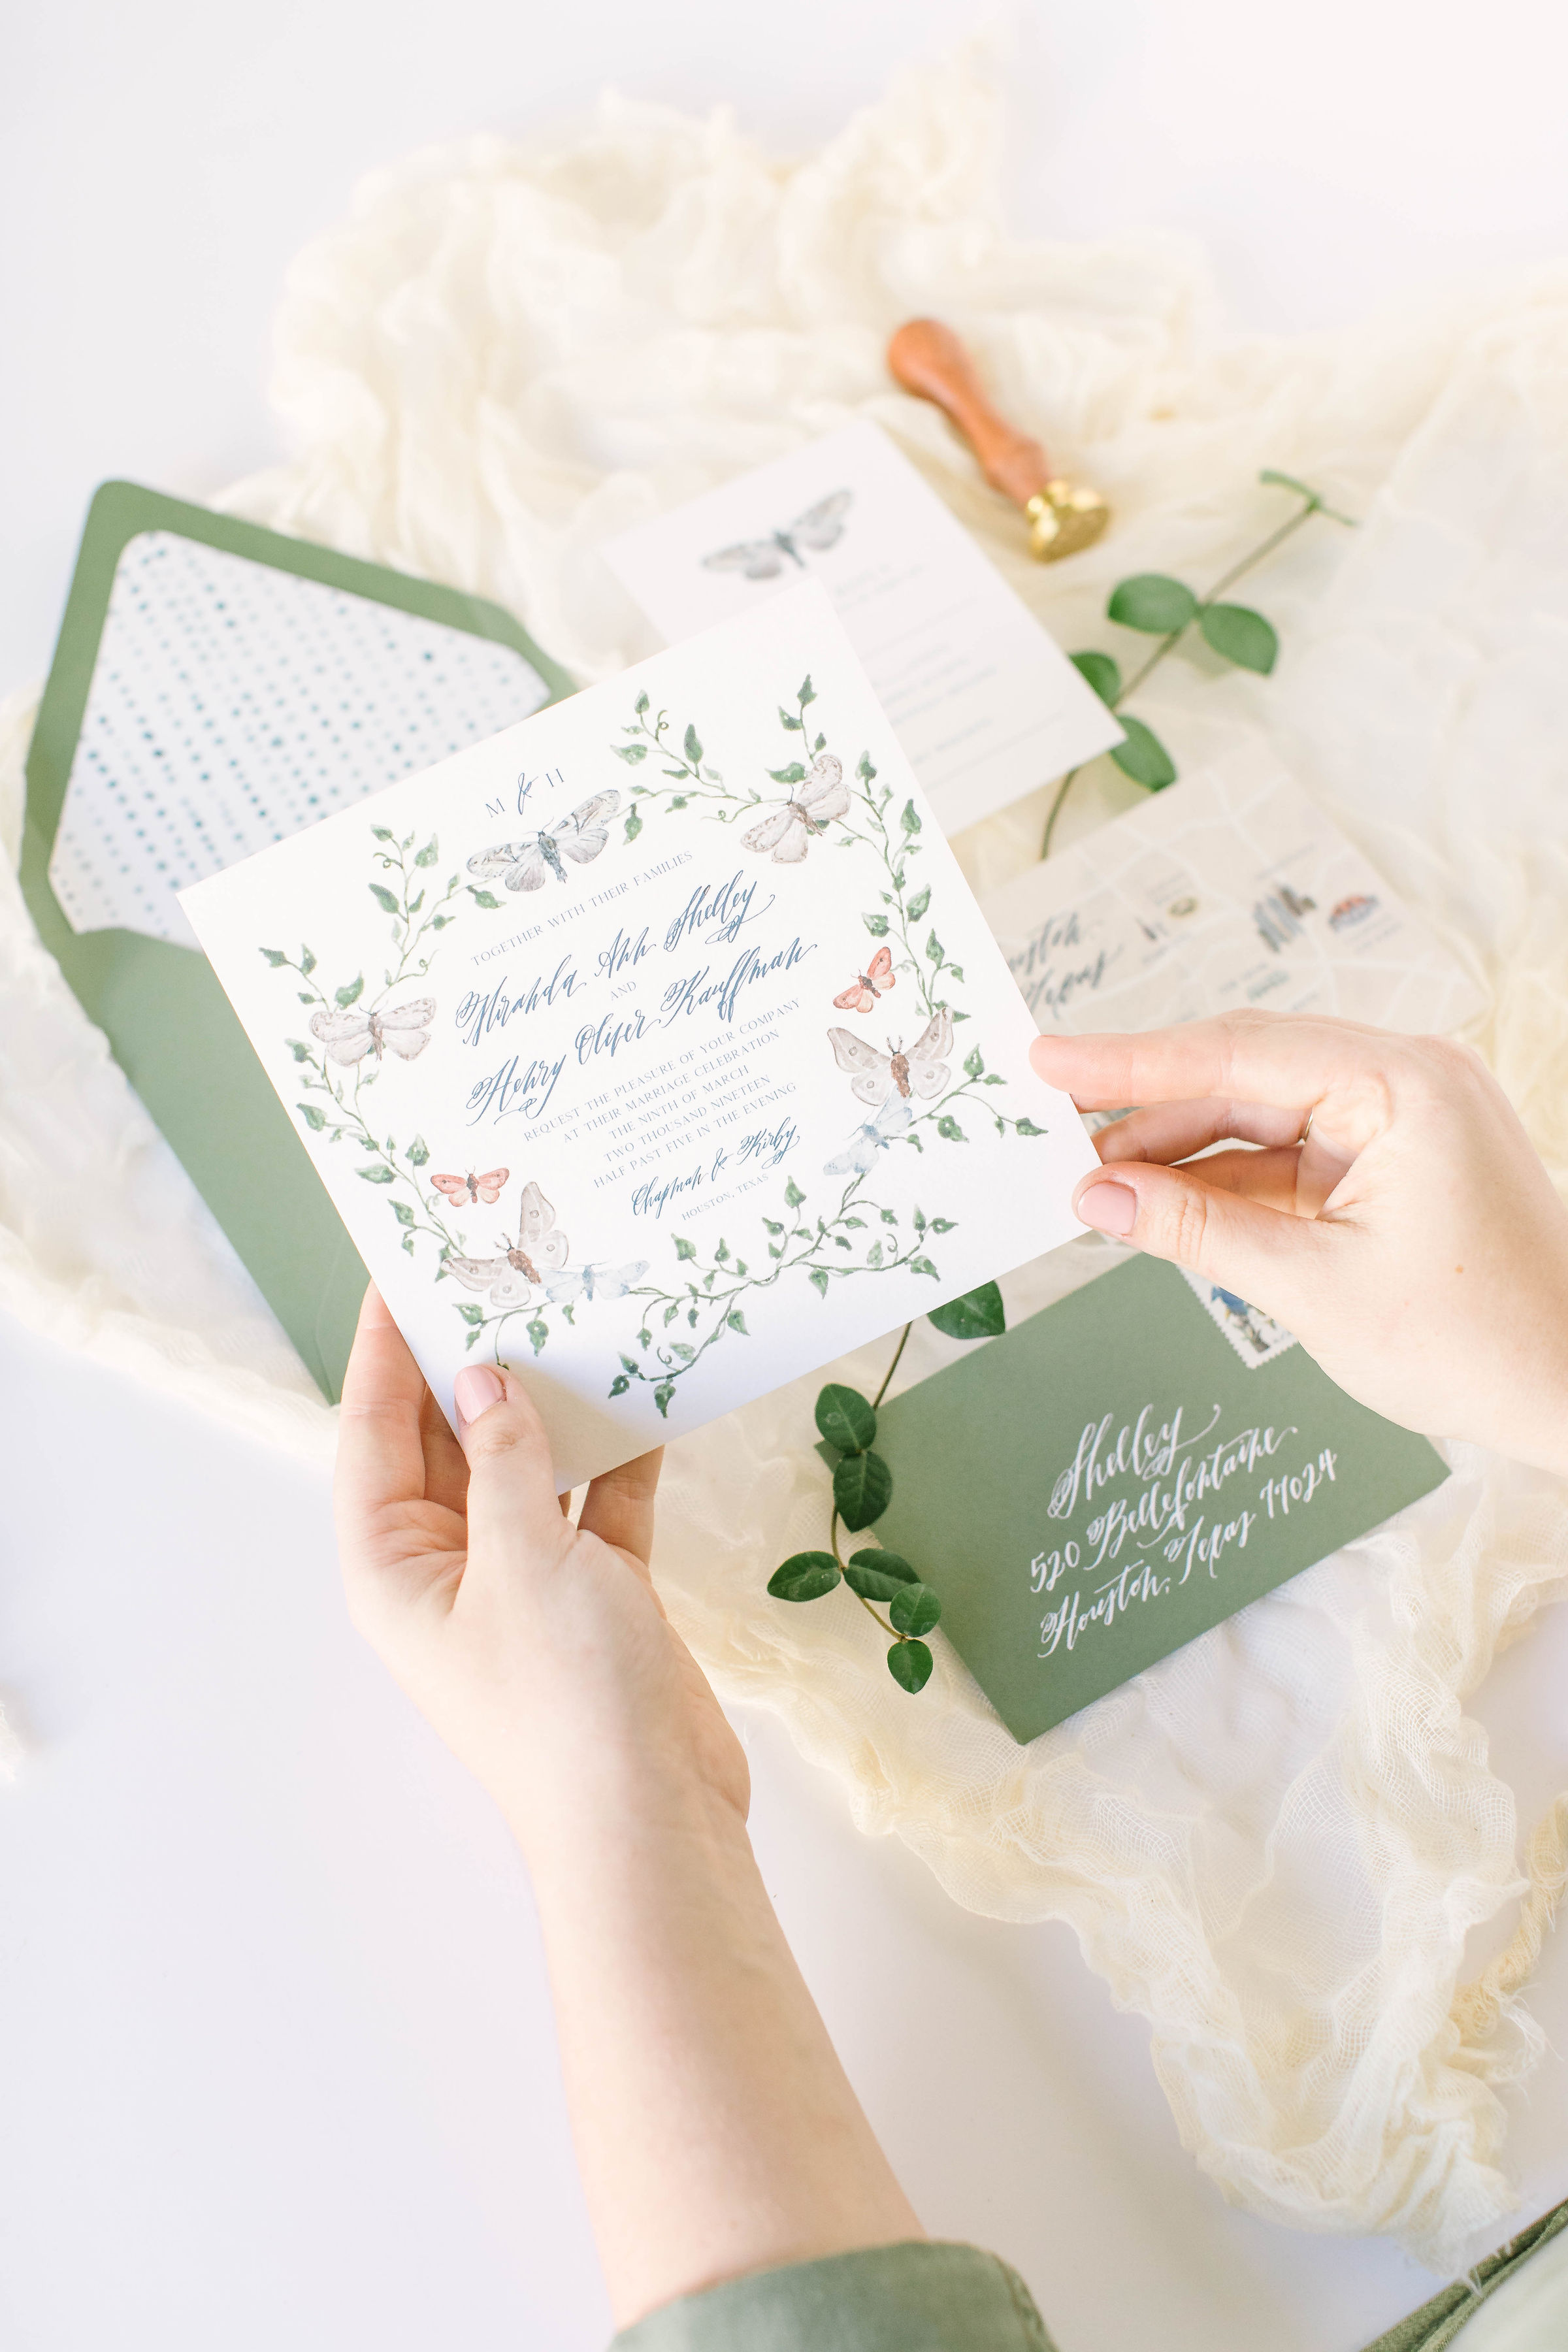 Brides of Houston Stationery Feature - Photography: Picture This Forever PhotographyVenue: The Creative ChateauView the full feature and interview on Brides of Houston